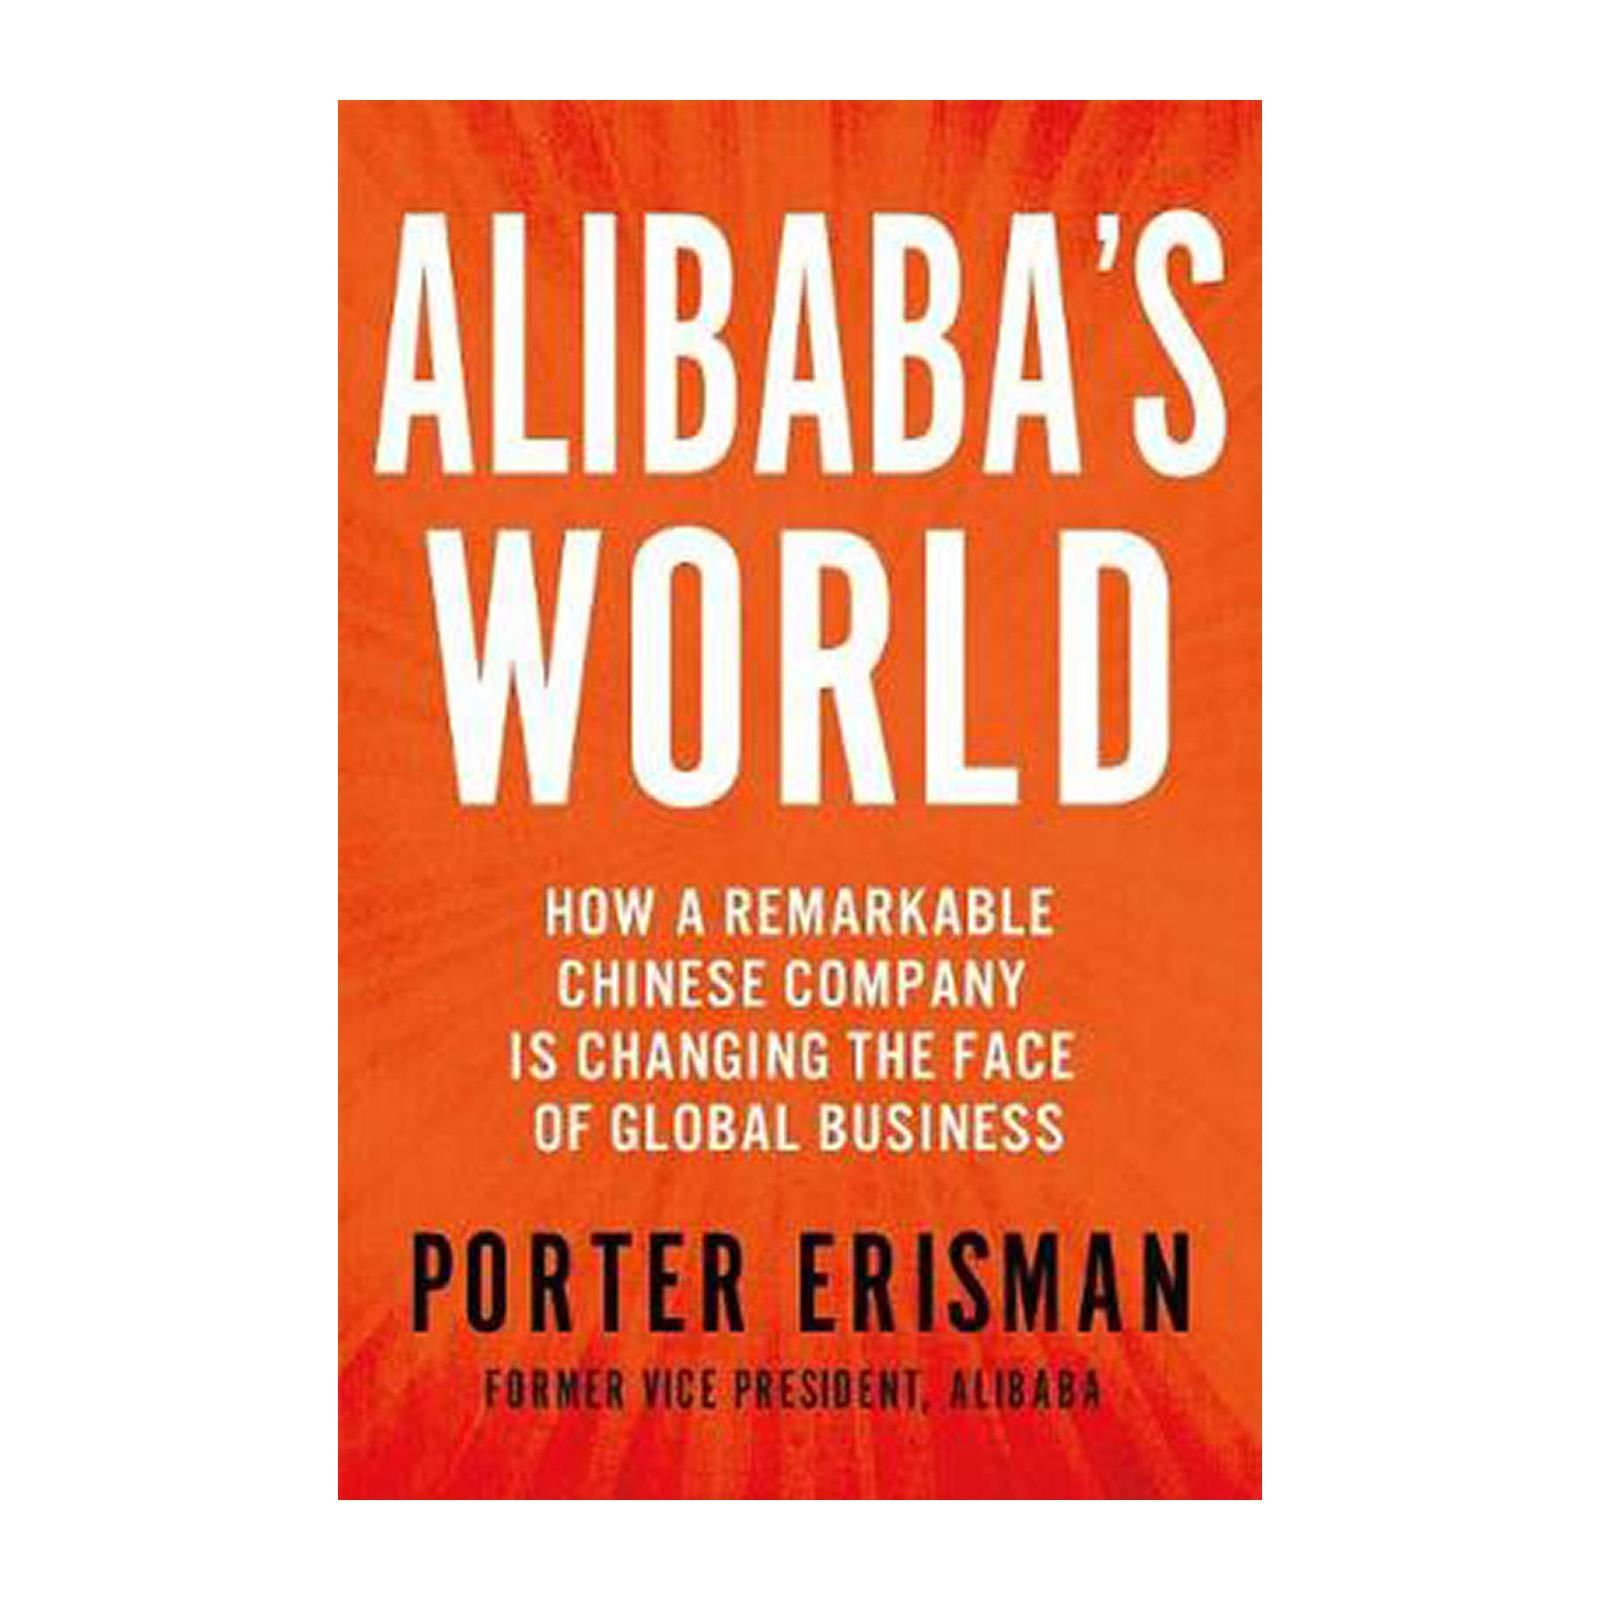 Alibabas World: How A Remarkable Chinese Company Is Changing The Face Of Global Business (Paperback)